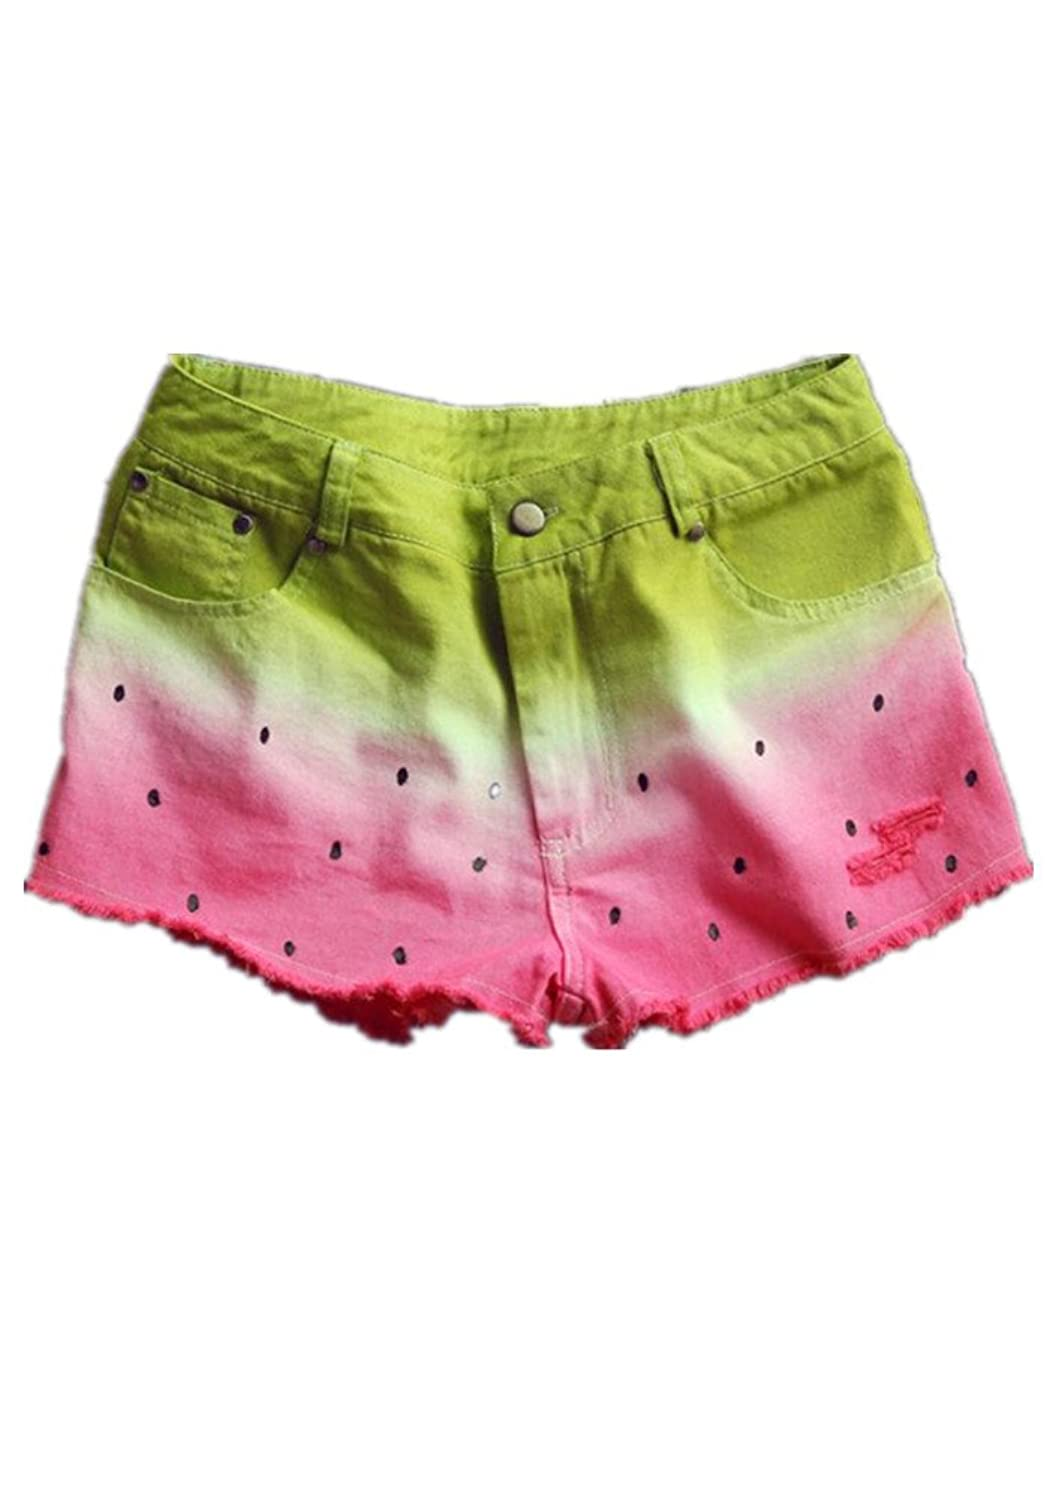 Lingswallow Women Summer Casual Low Waist Stretchy Short Shorts Hot Pants Pink